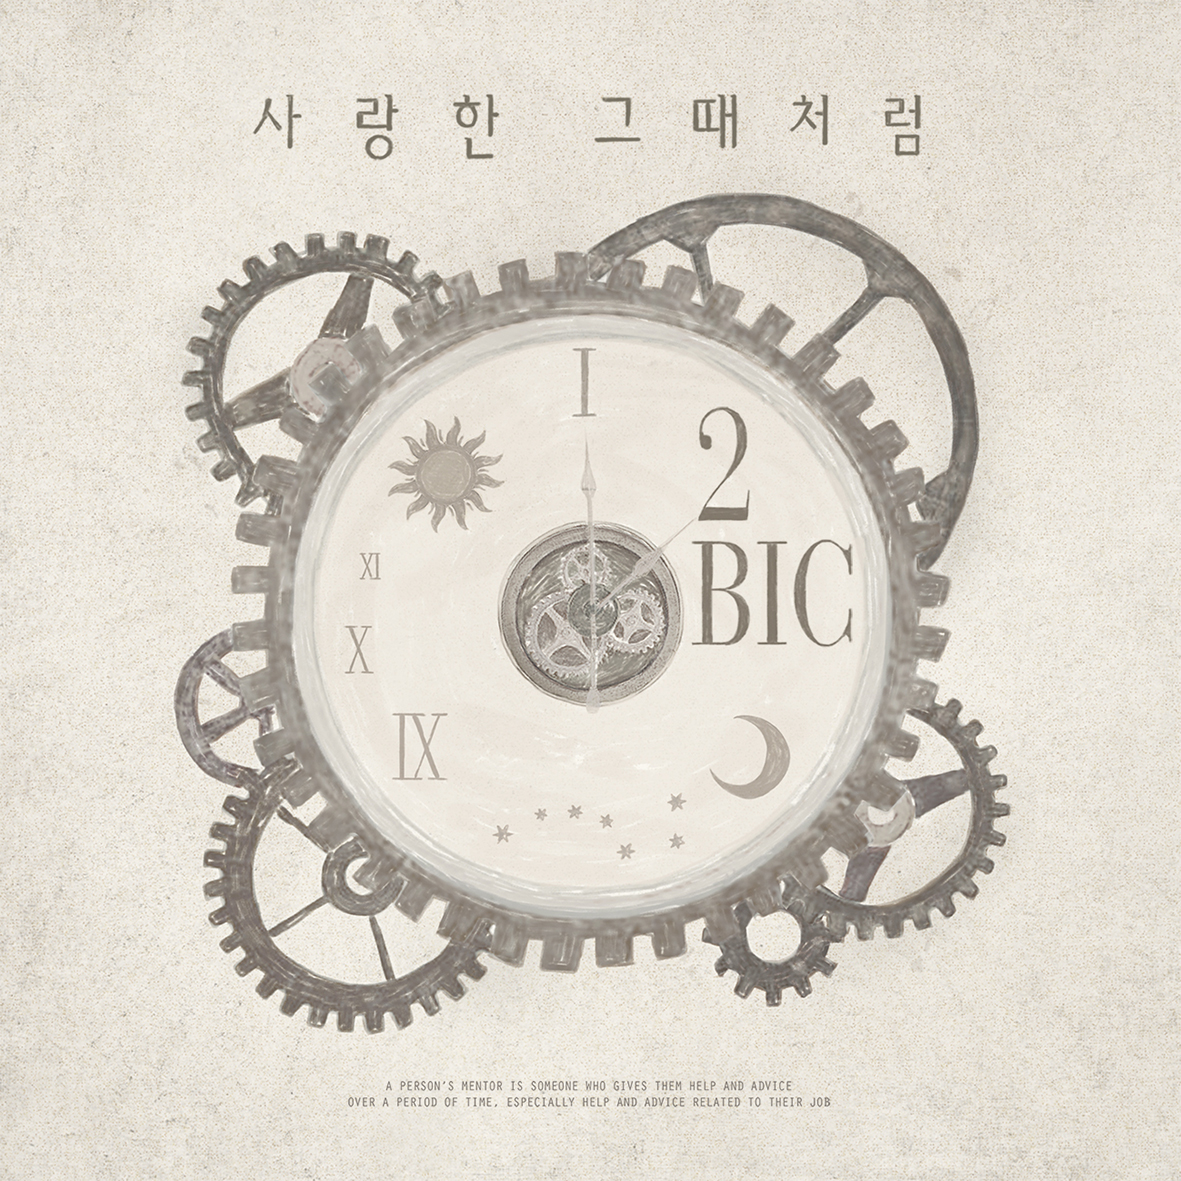 2BiC – Love Memories K2Ost free mp3 download korean song kpop kdrama ost lyric 320 kbps